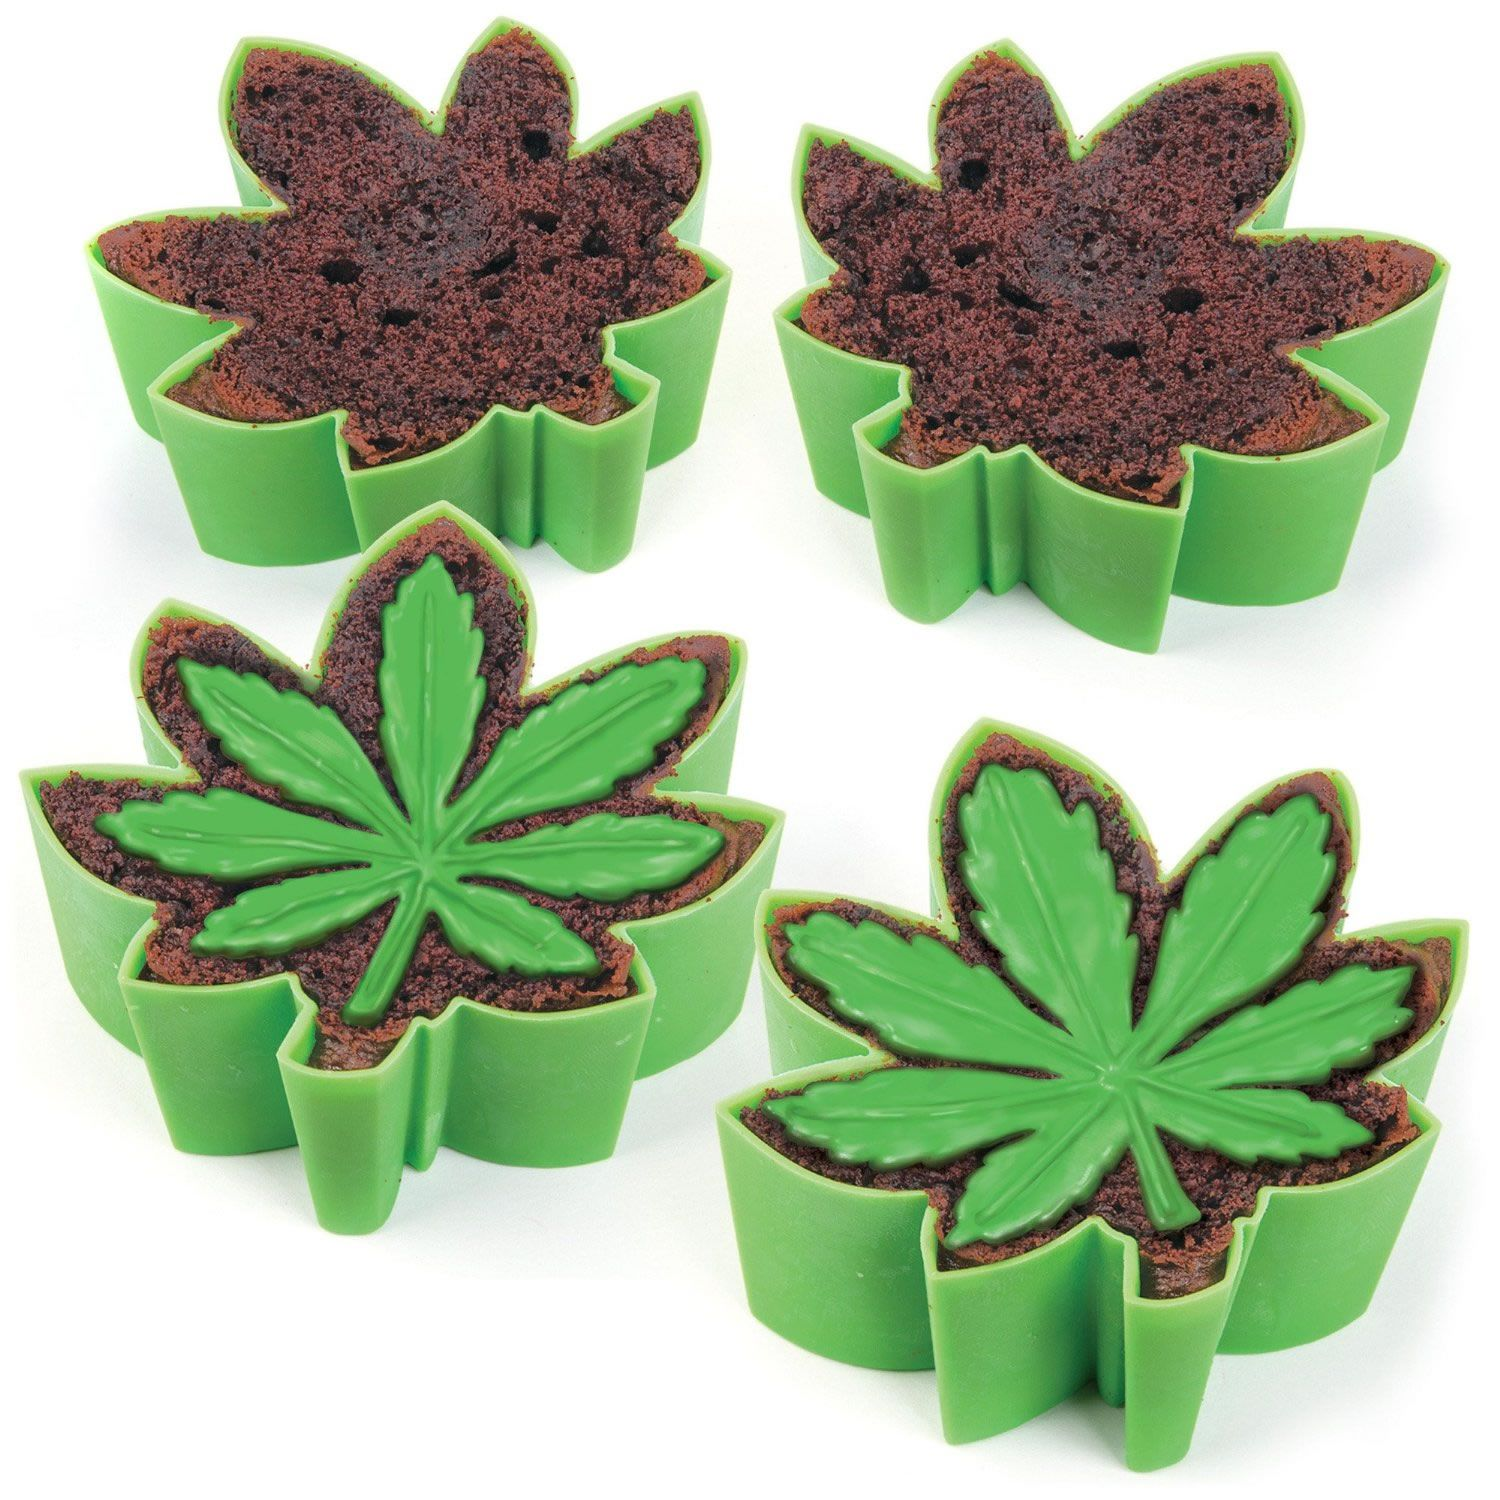 Pot Leaf Blundt Cake Molds For Baking Marijuana Year Round